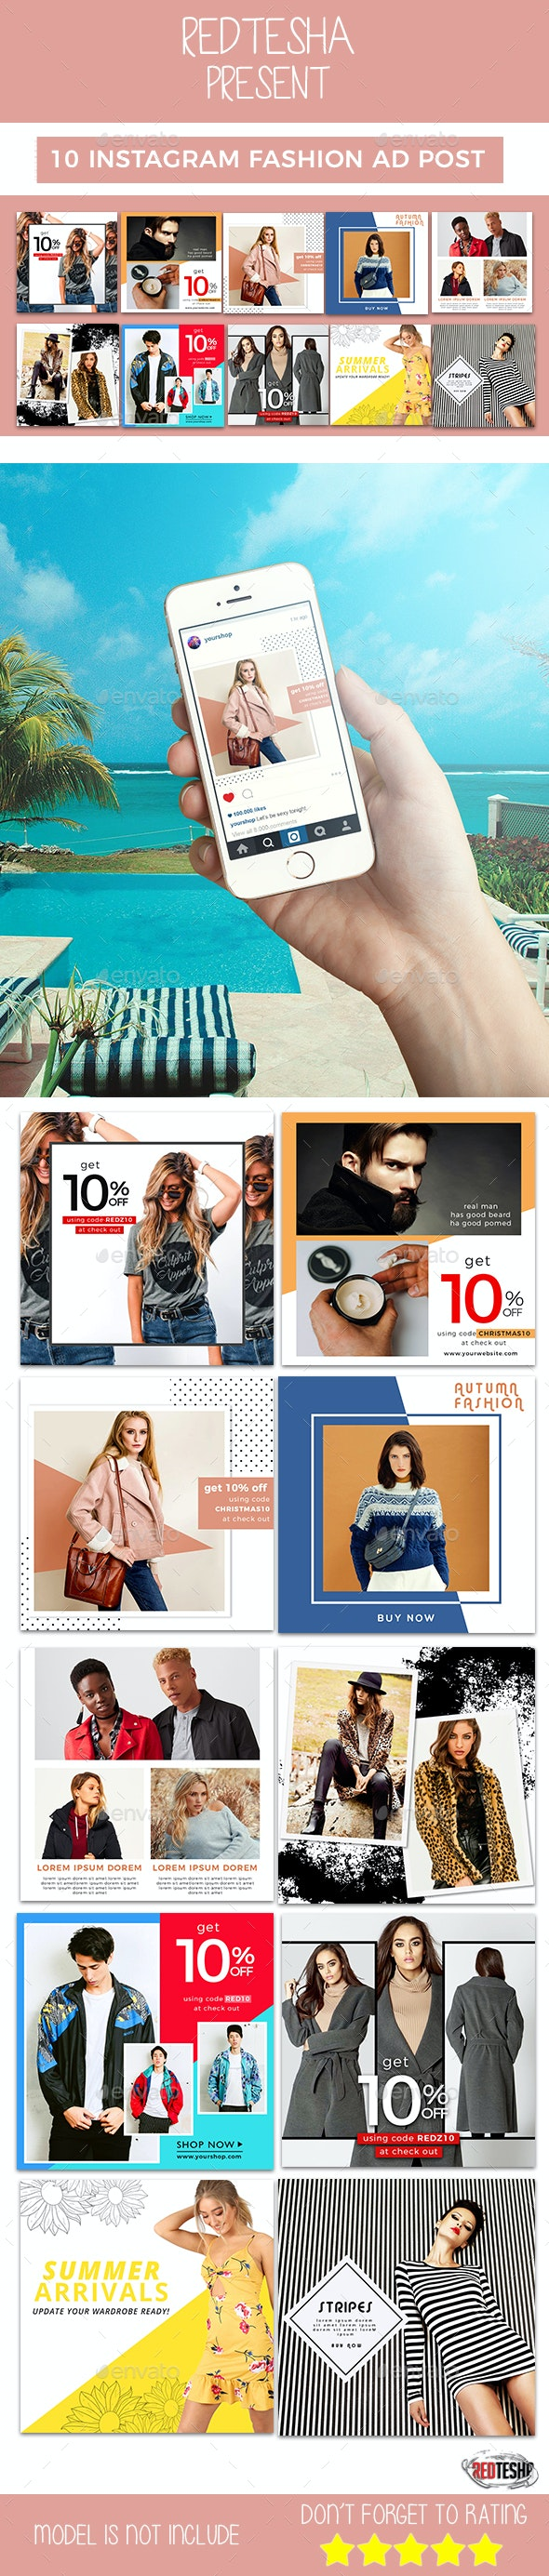 Instagram Fashion Banner #18 - Banners & Ads Web Elements